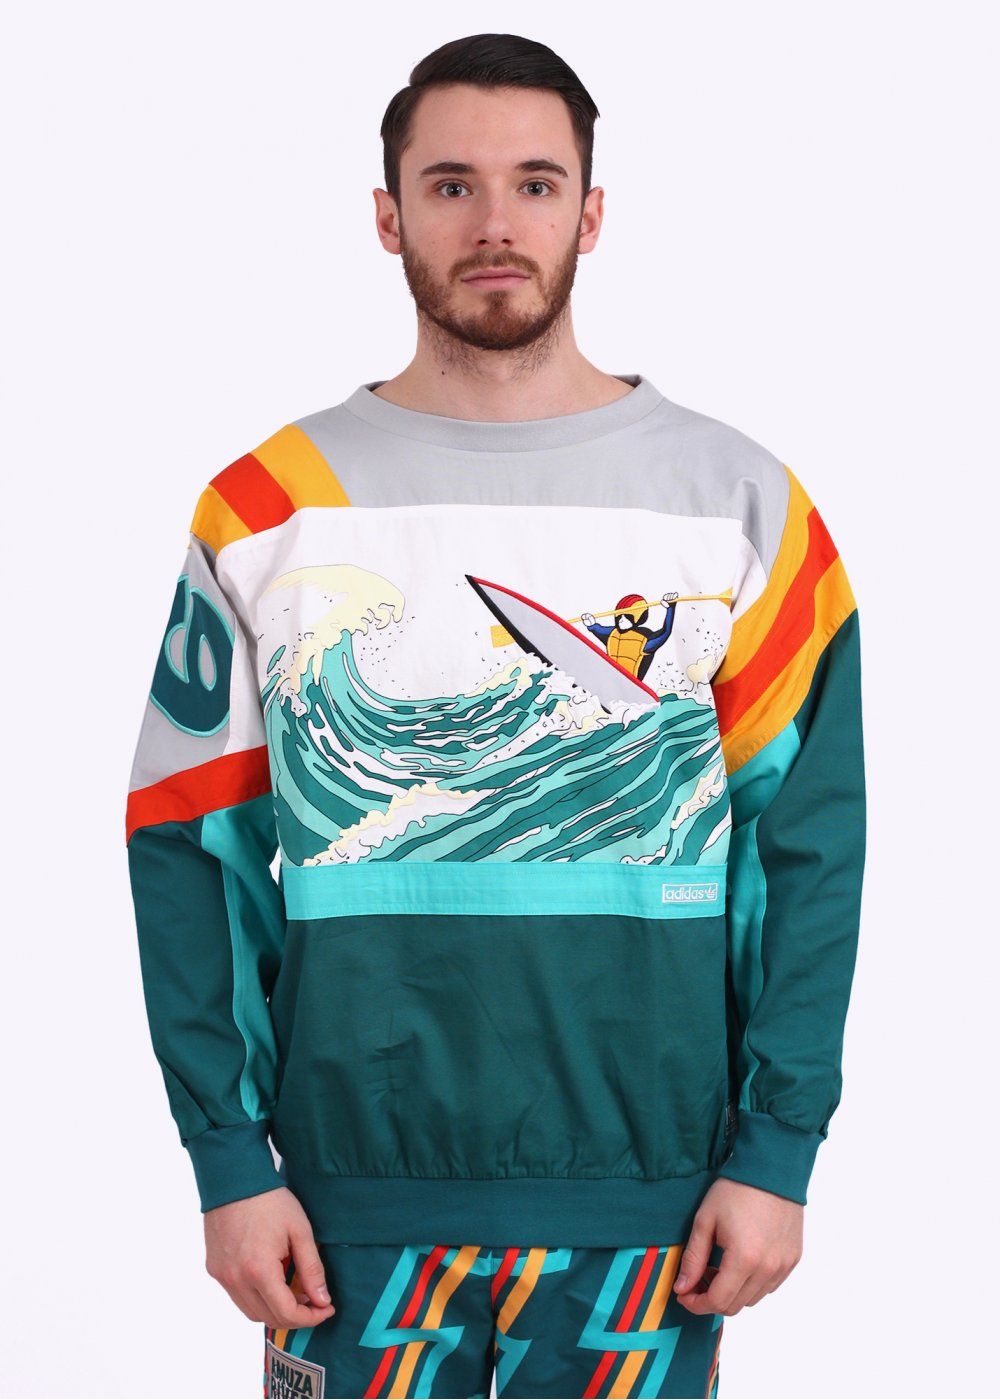 Adidas Originals Canoe Island Crew Sweatshirt Multi Coloured